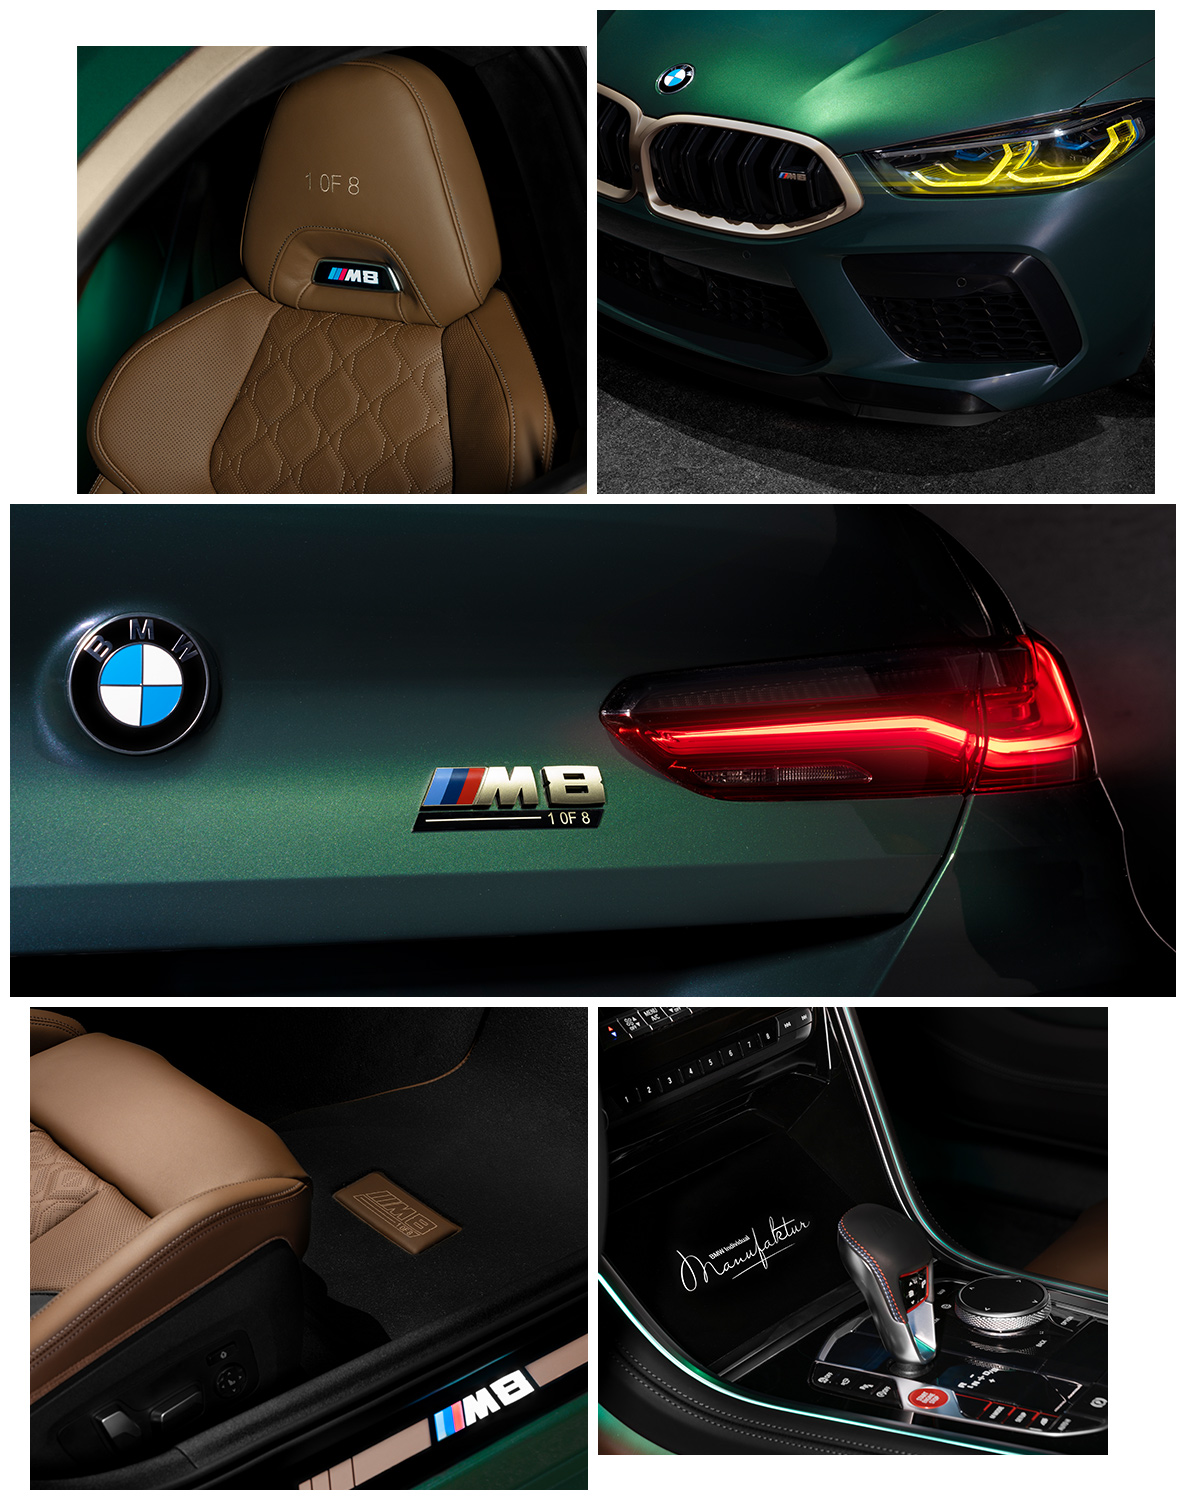 Details of the BMW M8 Gran Coupé First Edition 1-OF-8